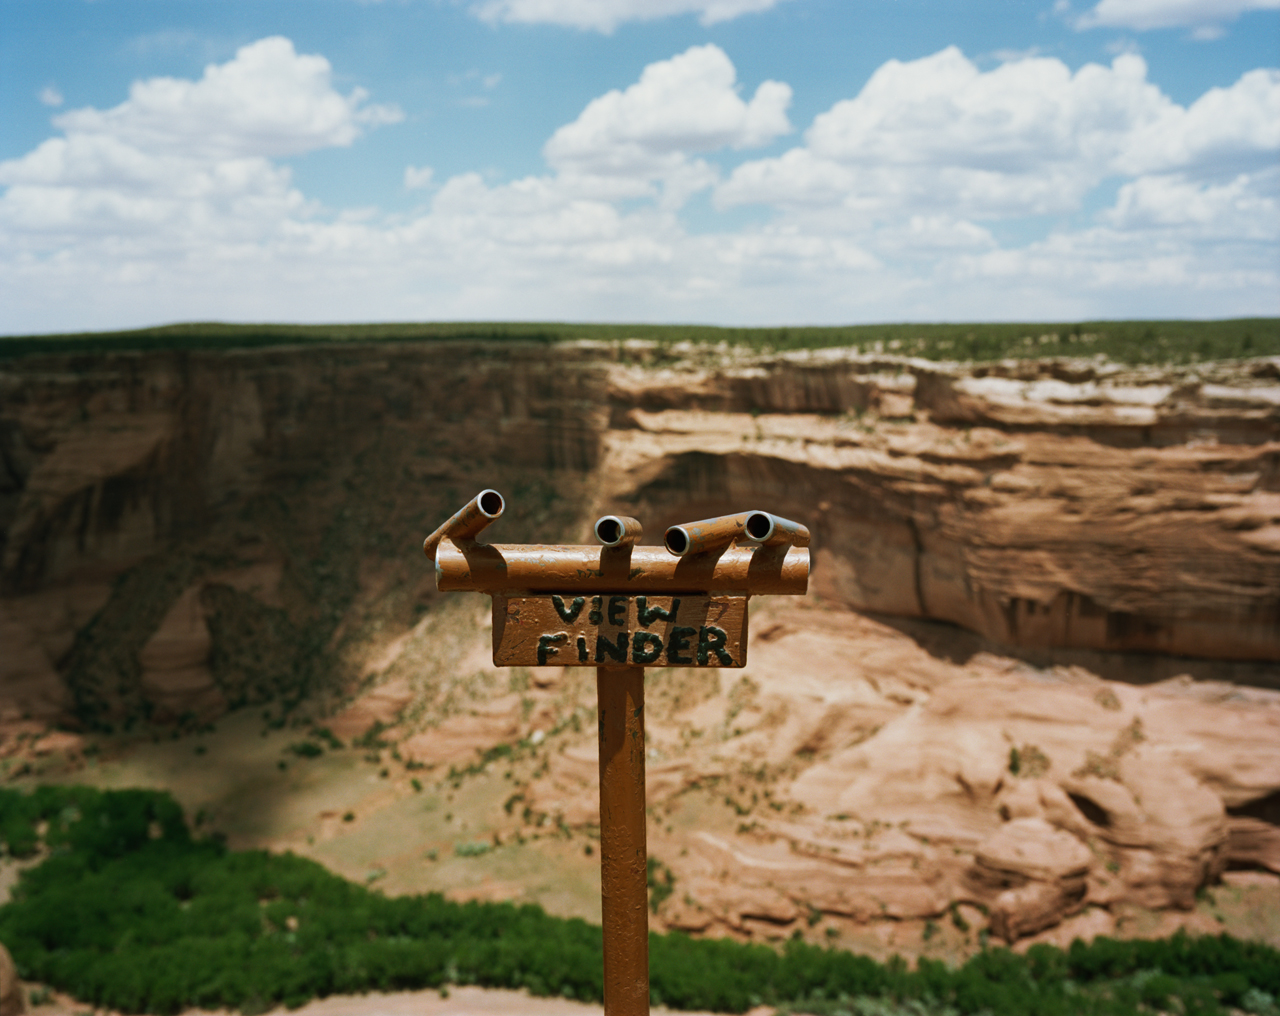 Viewfinder, Canyon De Chelly National Monument, Arizona